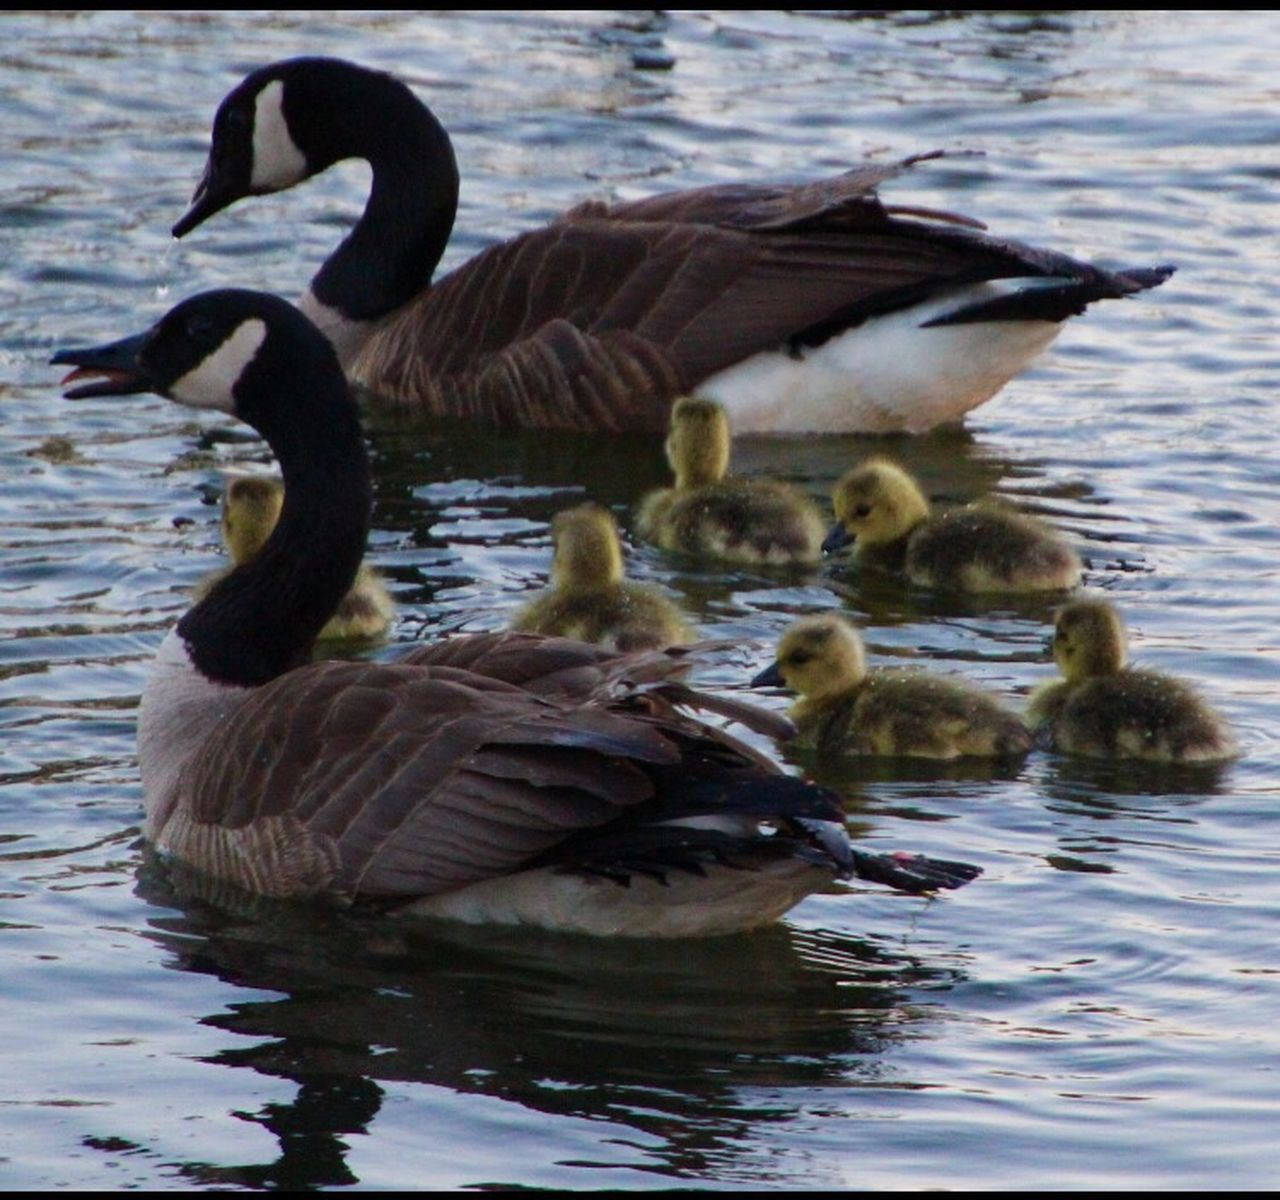 animal themes, animals in the wild, lake, water, bird, swimming, animal wildlife, waterfront, nature, day, goose, water bird, no people, outdoors, togetherness